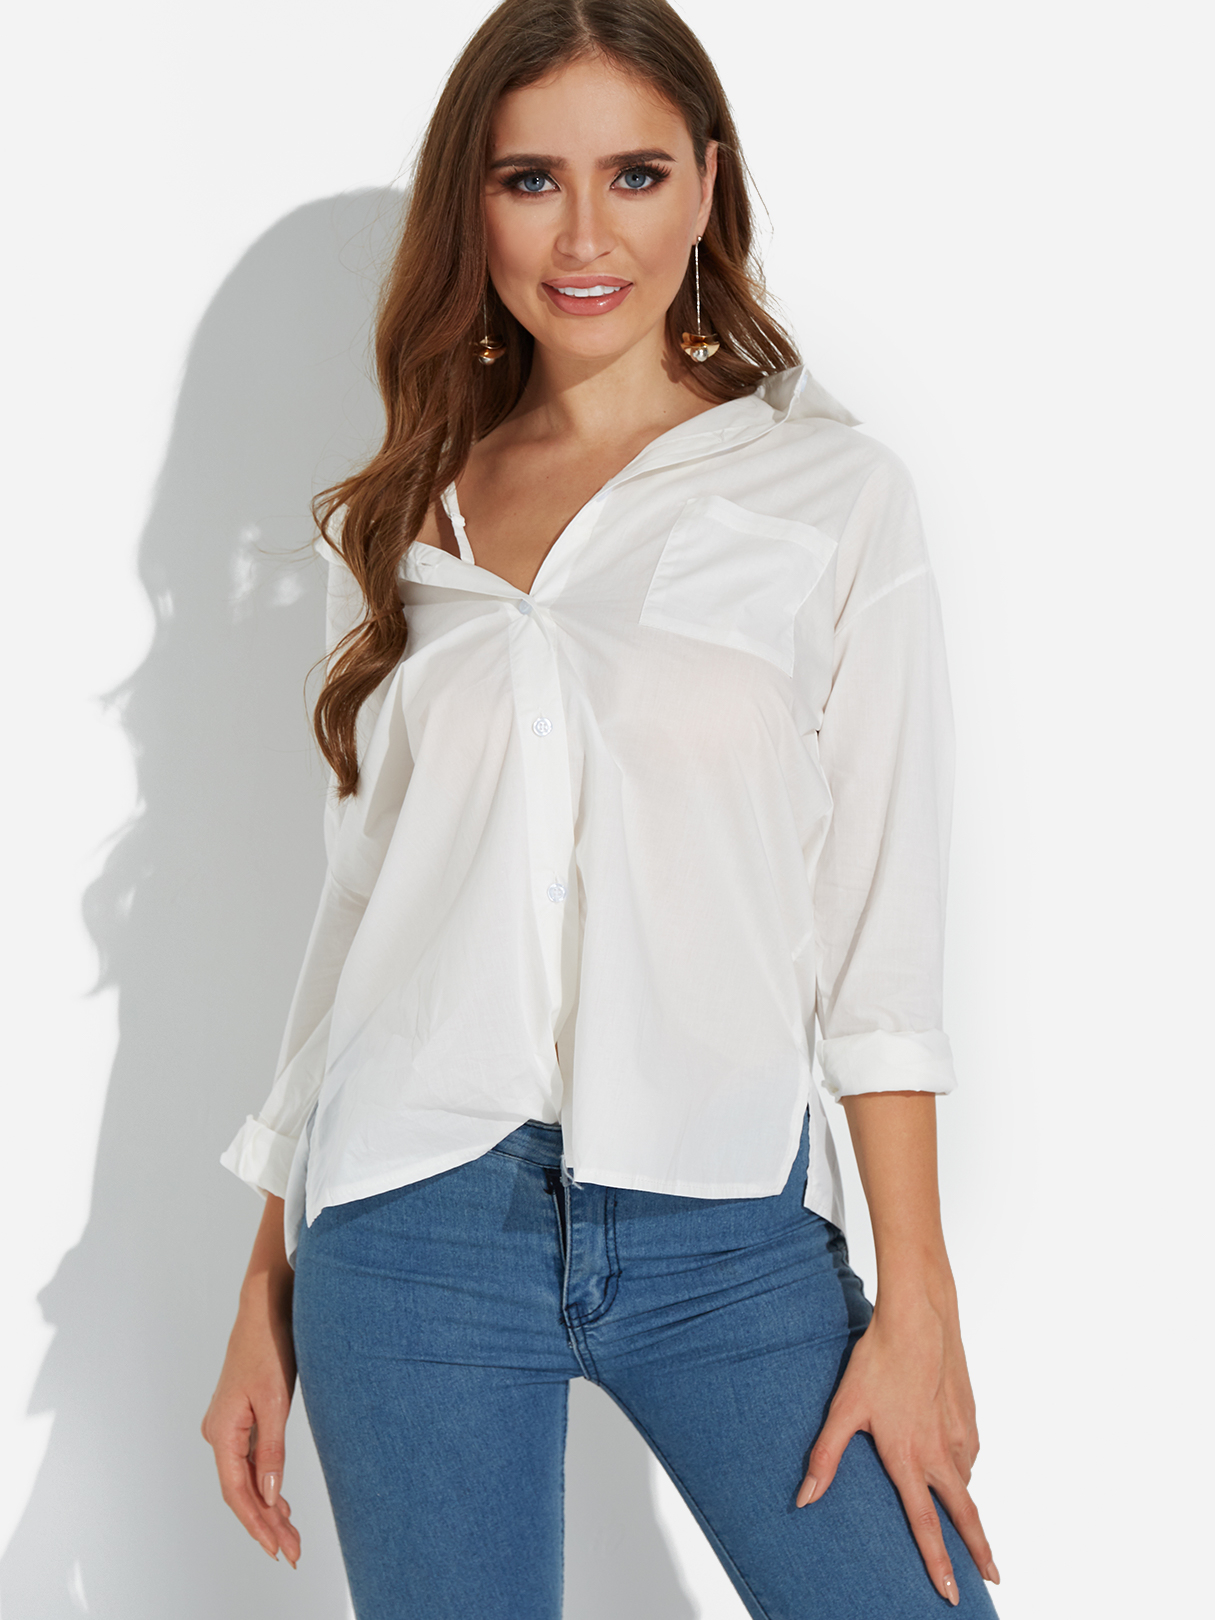 White Adjustable Shoulder Straps V-neck Long Sleeves Shirt